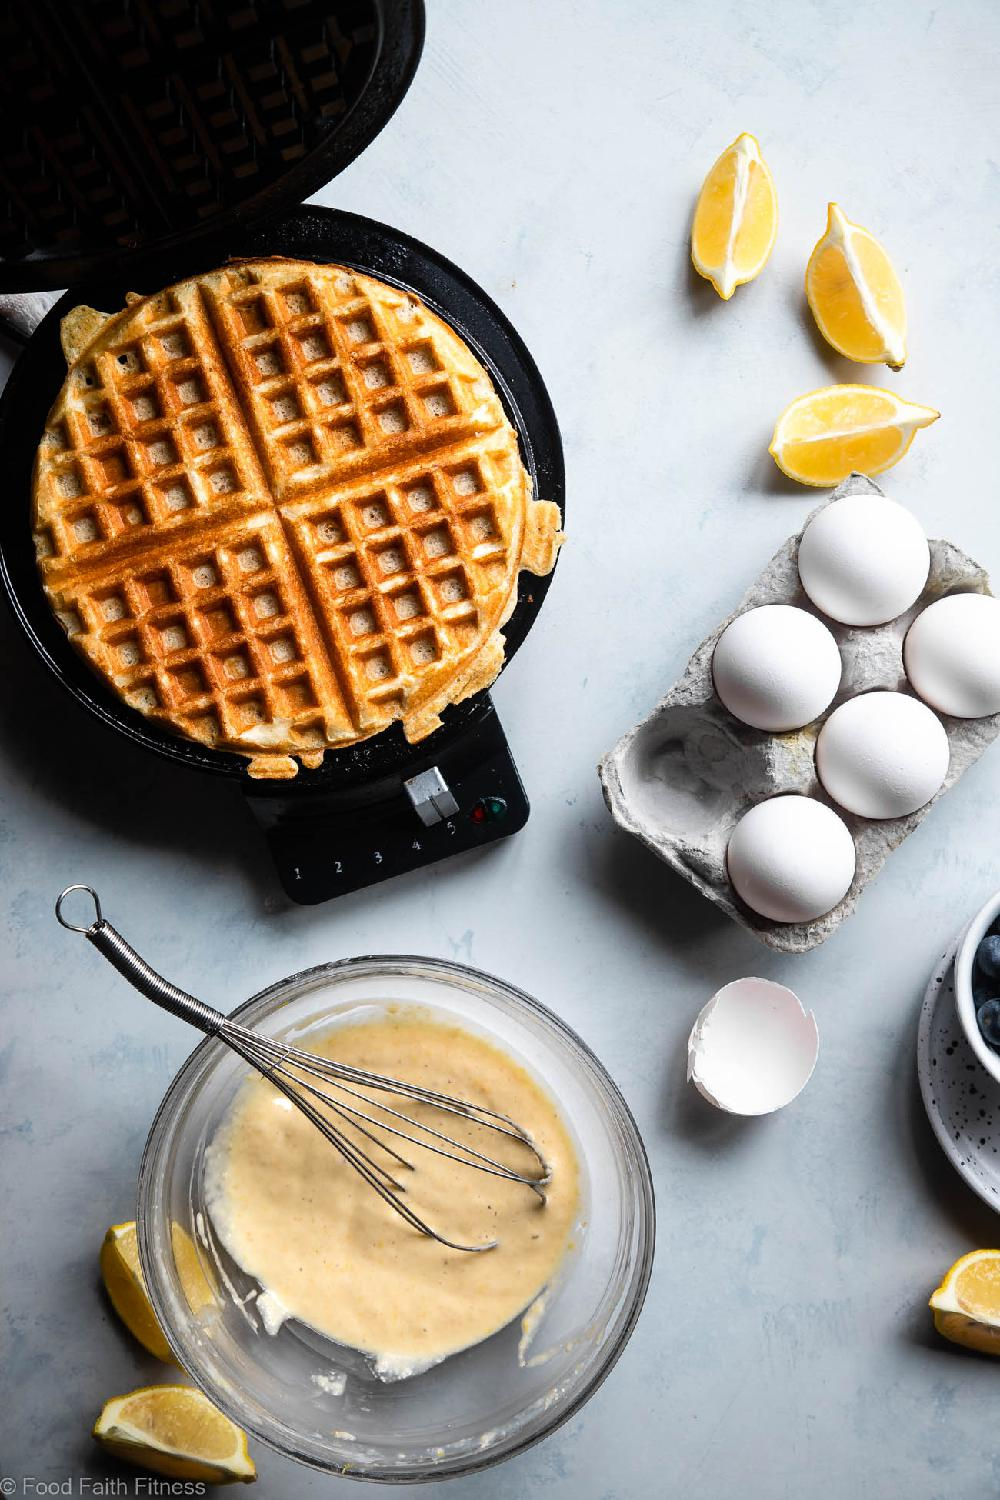 Lemon Blueberry Gluten Free Greek Yogurt Waffles - These gluten free waffles are so crispy and fluffy you will never believe they're low fat, oil free, protein packed and only 170 calories! | #Foodfaithfitness | #Glutenfree #Lowfat #Healthy #Waffles #Breakfast